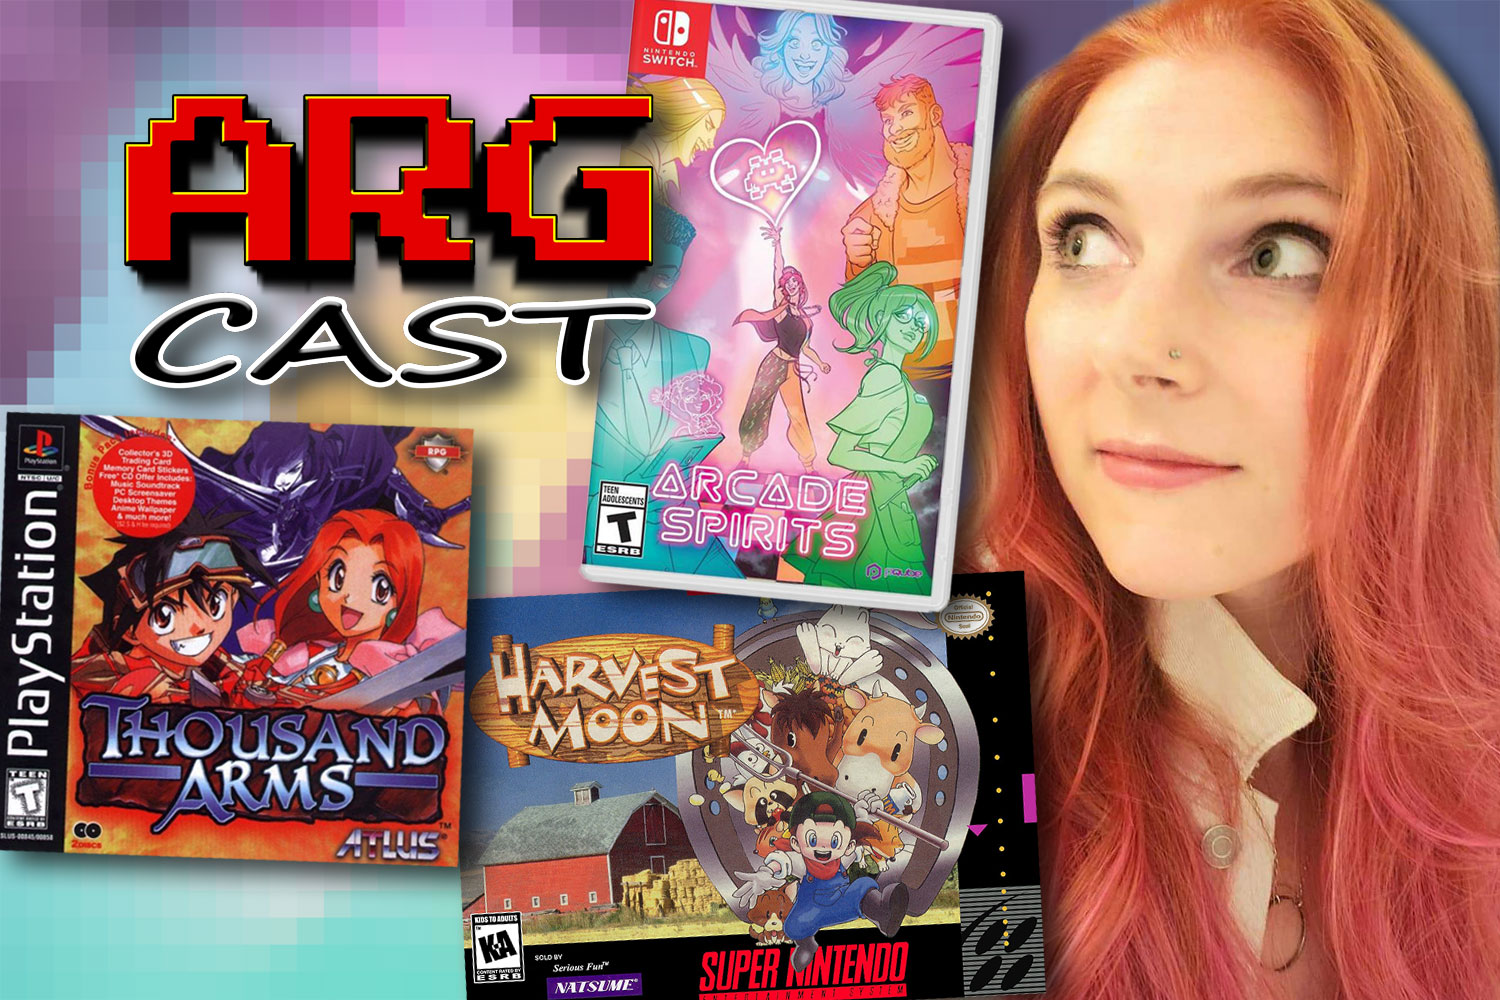 ARGcast #206: Dating in Video Games w/ Aenne Schumann